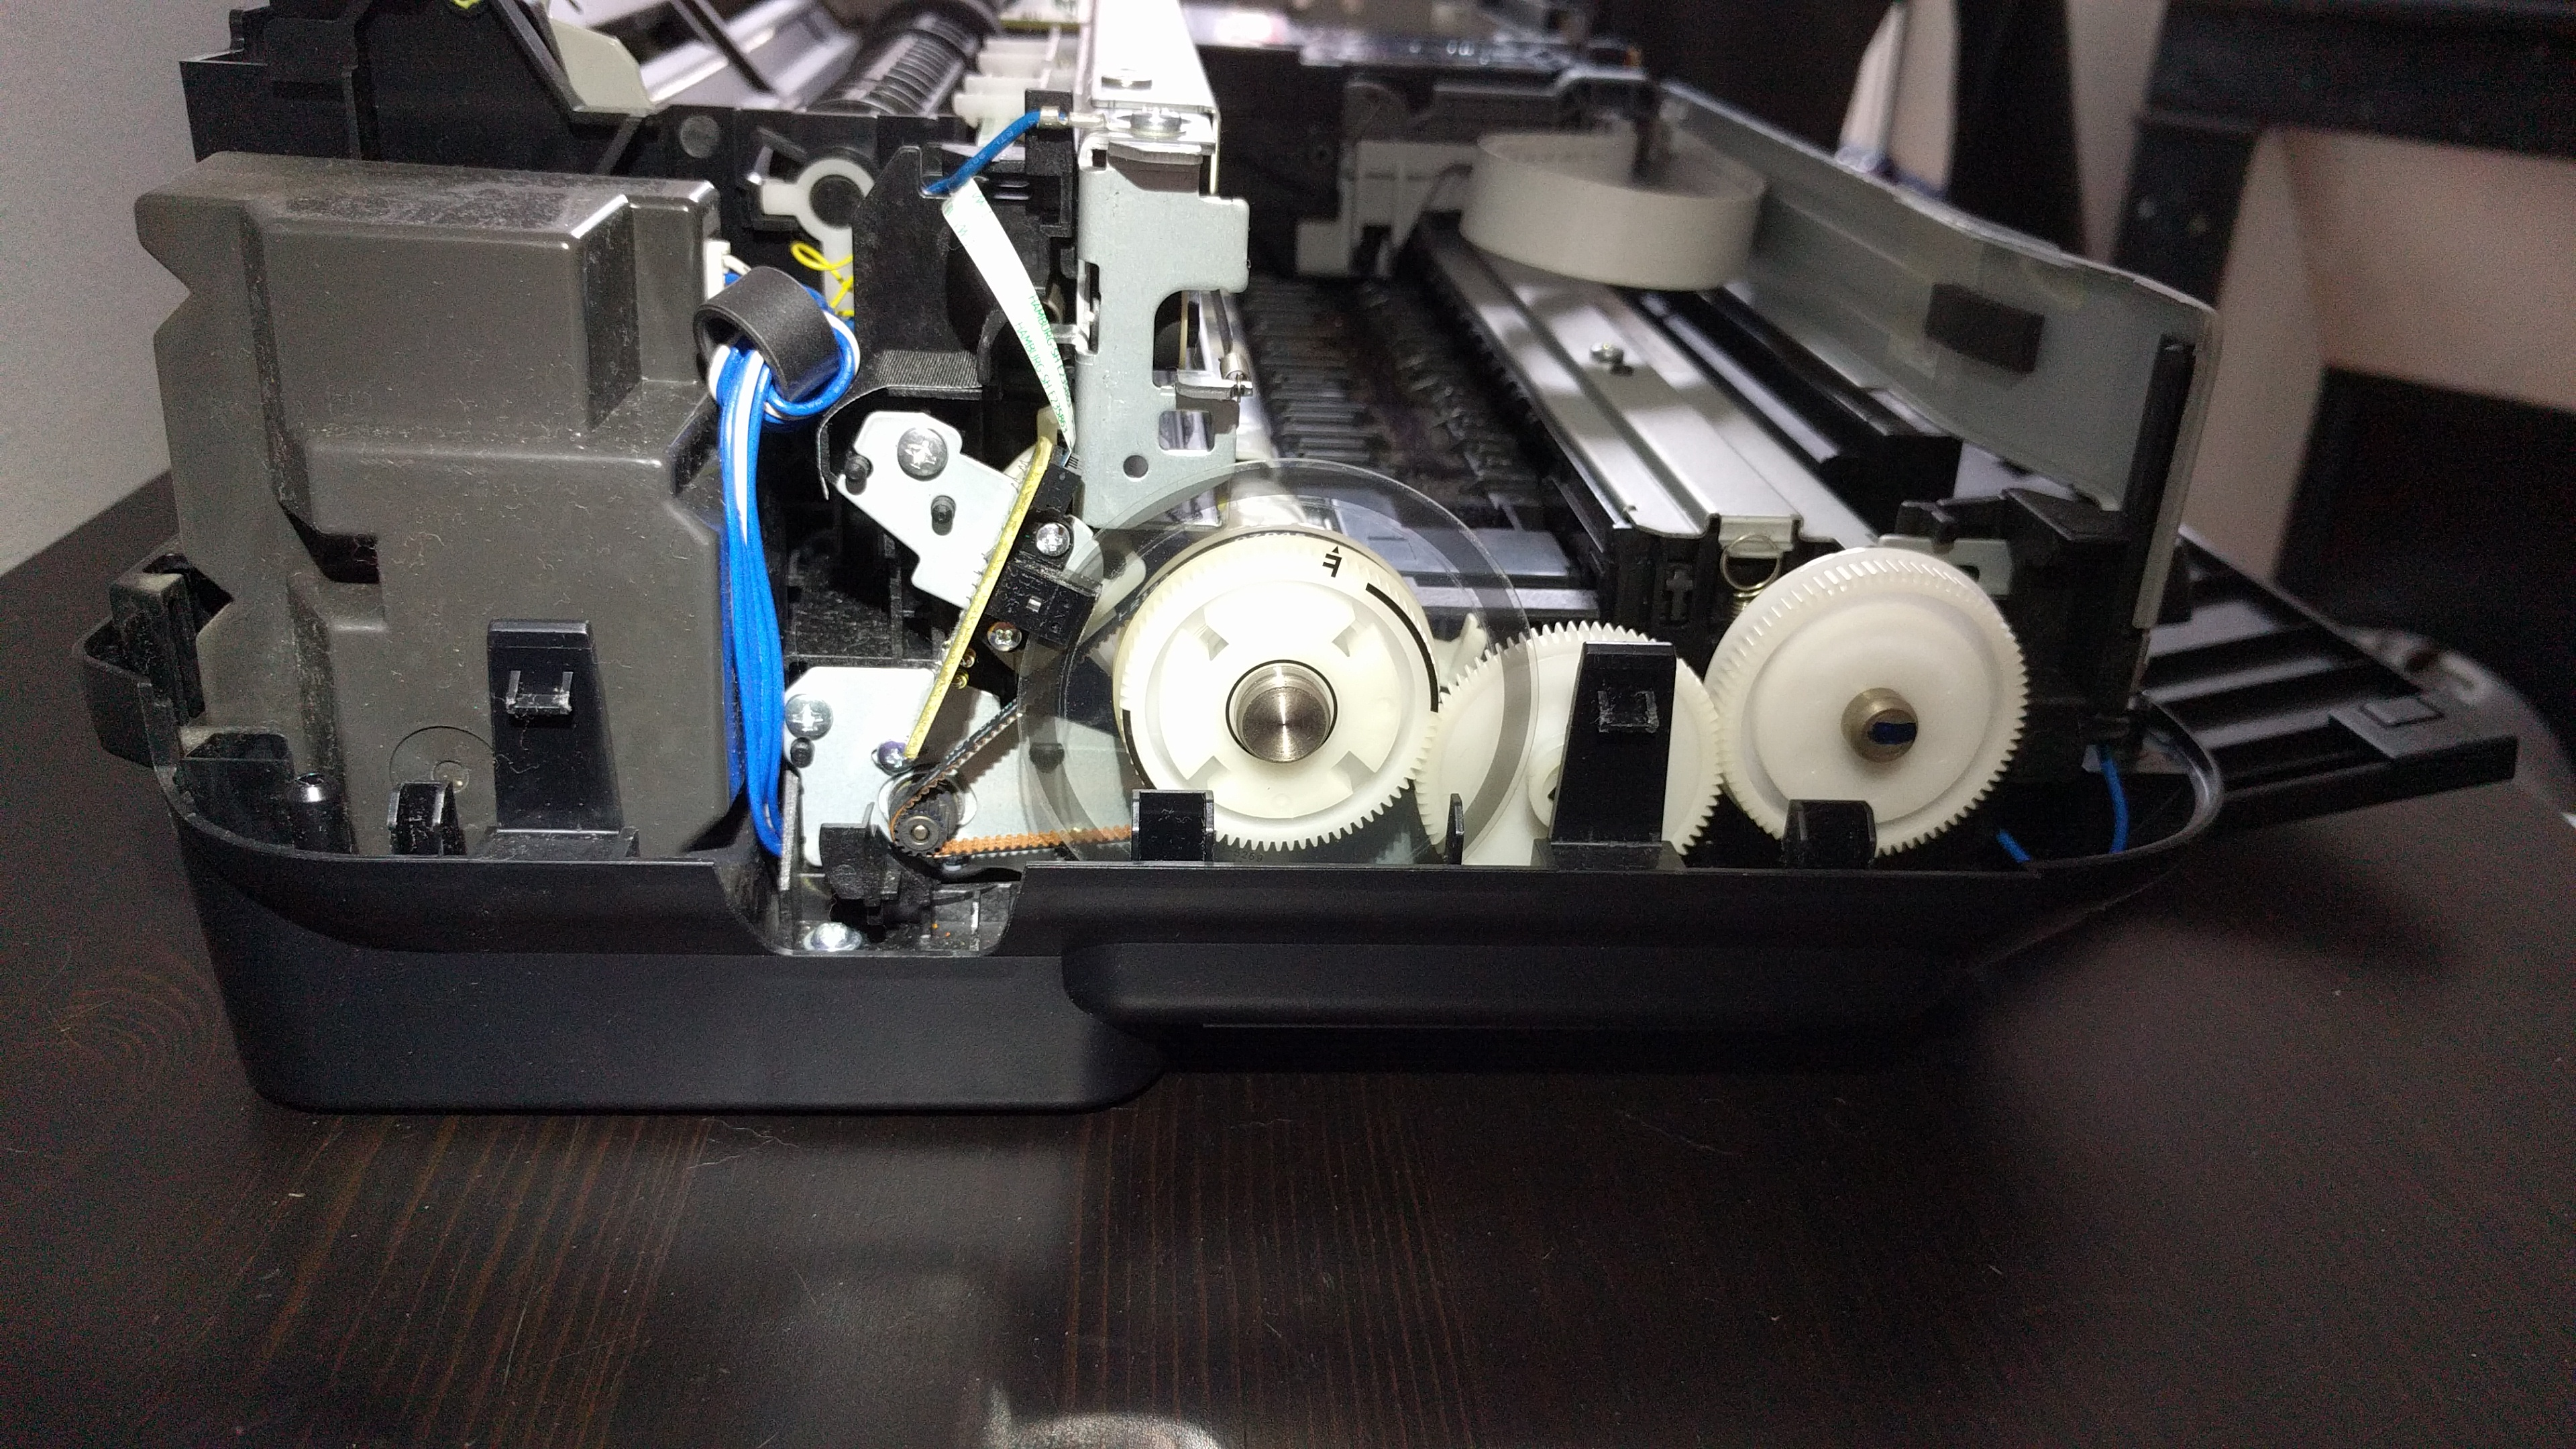 Picture of Open the Printer 2/2